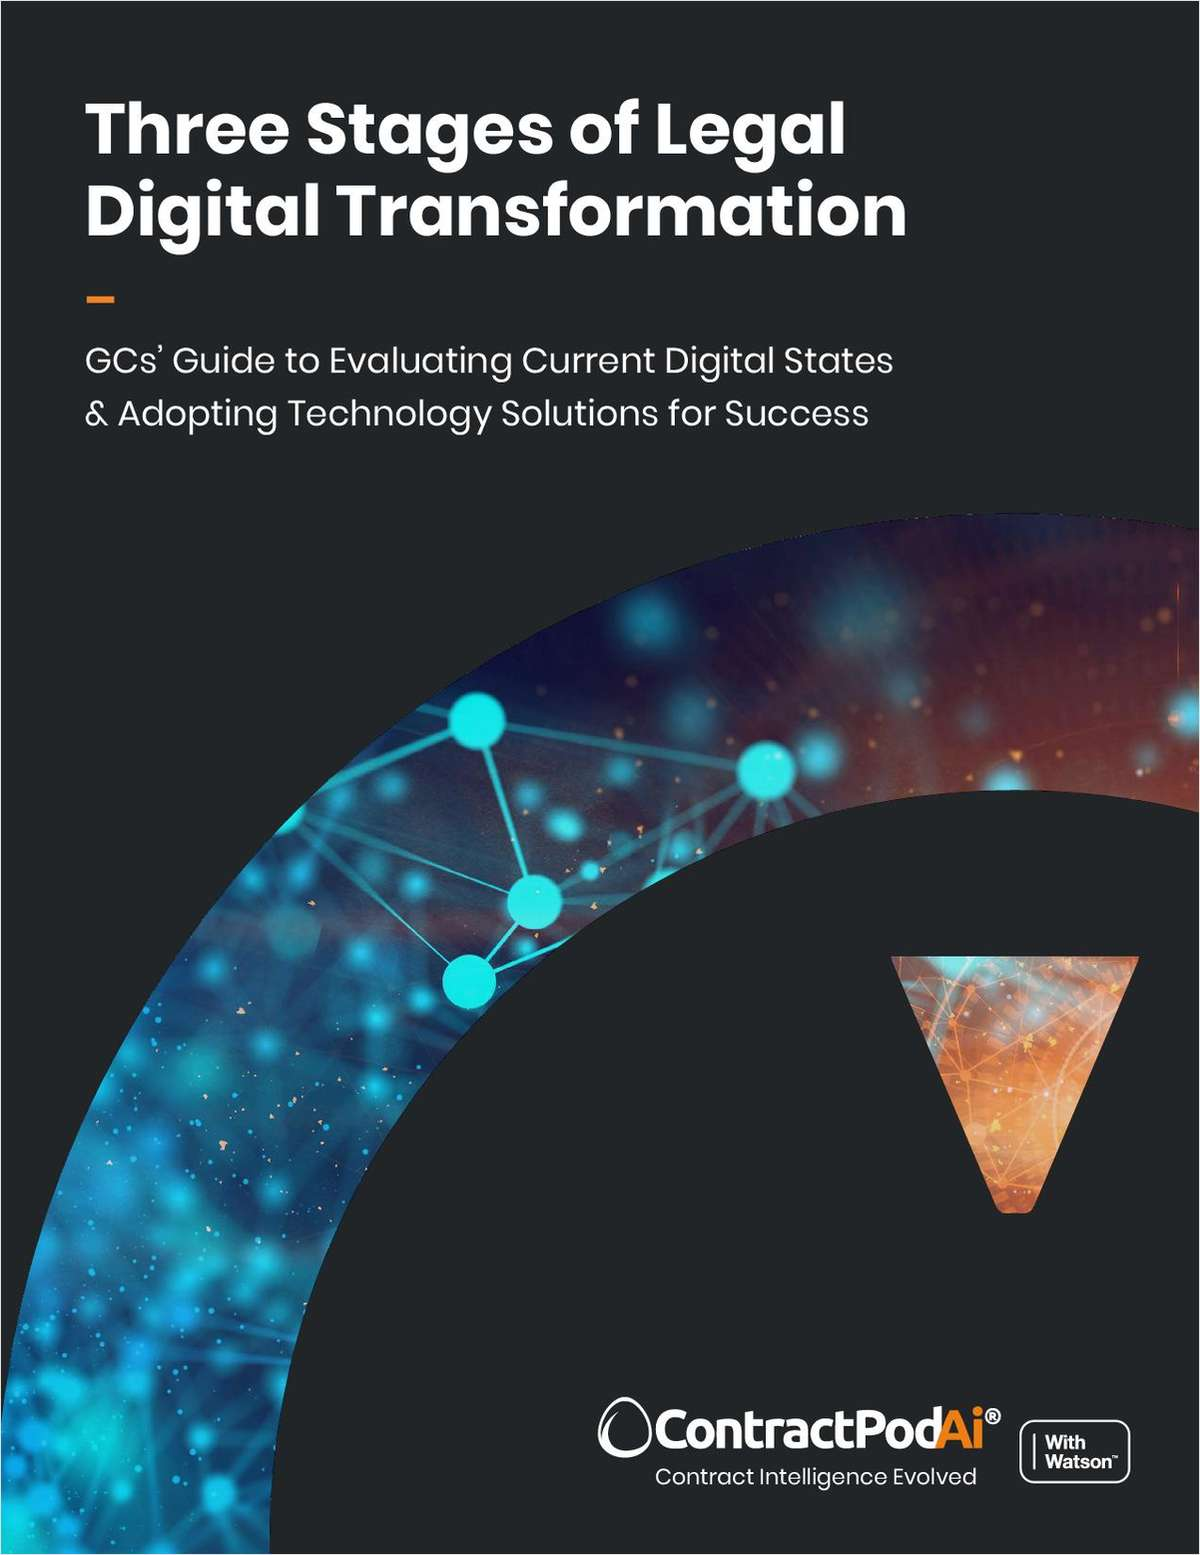 Three Stages of Legal Digital Transformation